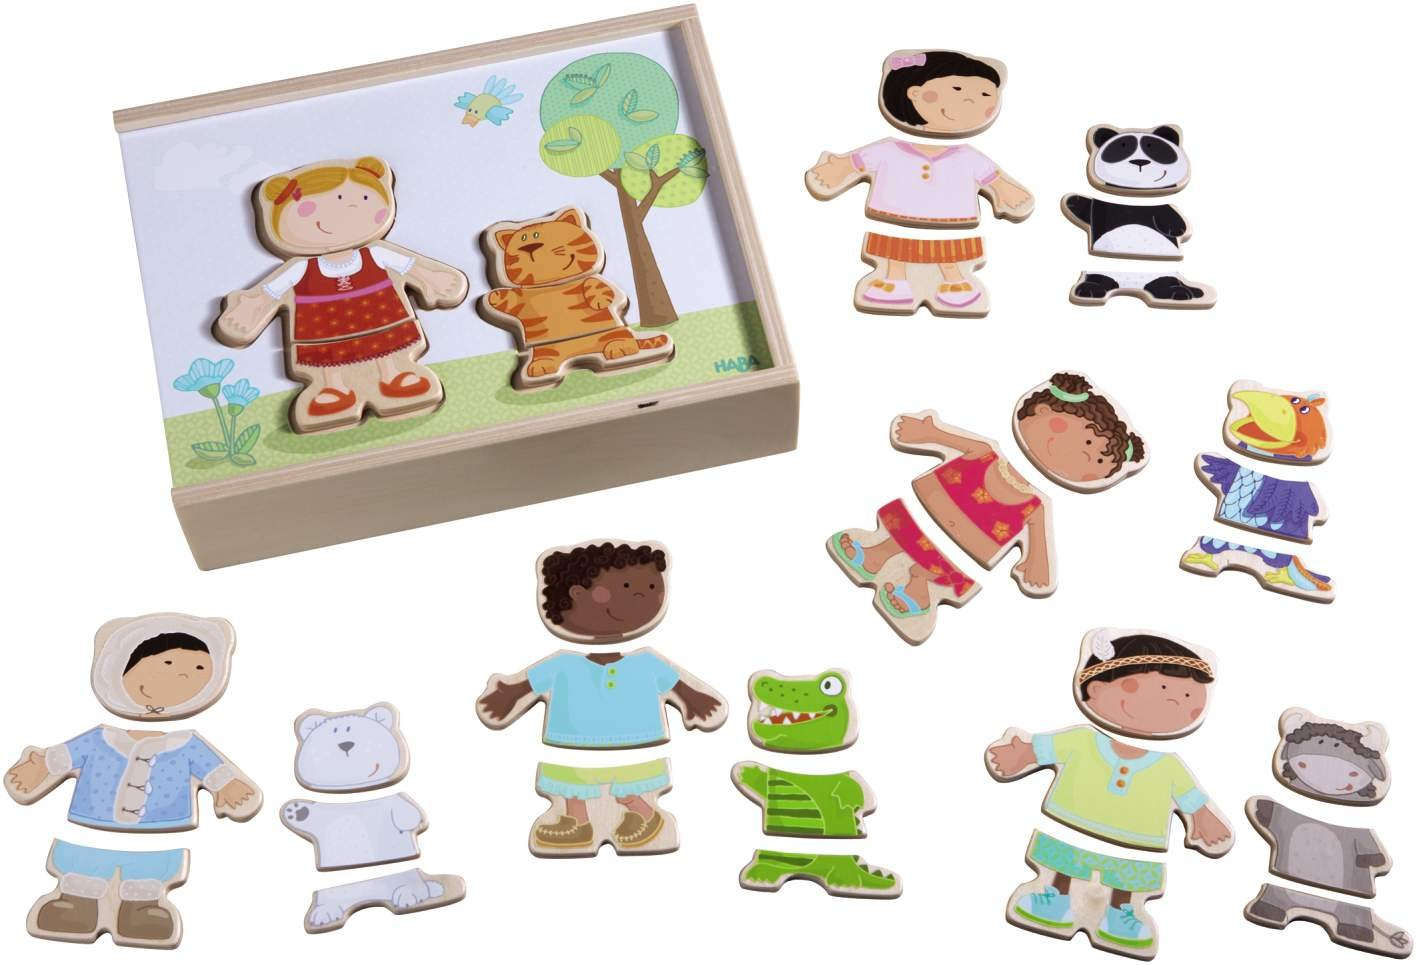 HABA Children of the World - 36 Piece Mix and Match Multi-Cultural Puzzle with Wooden Storage Box